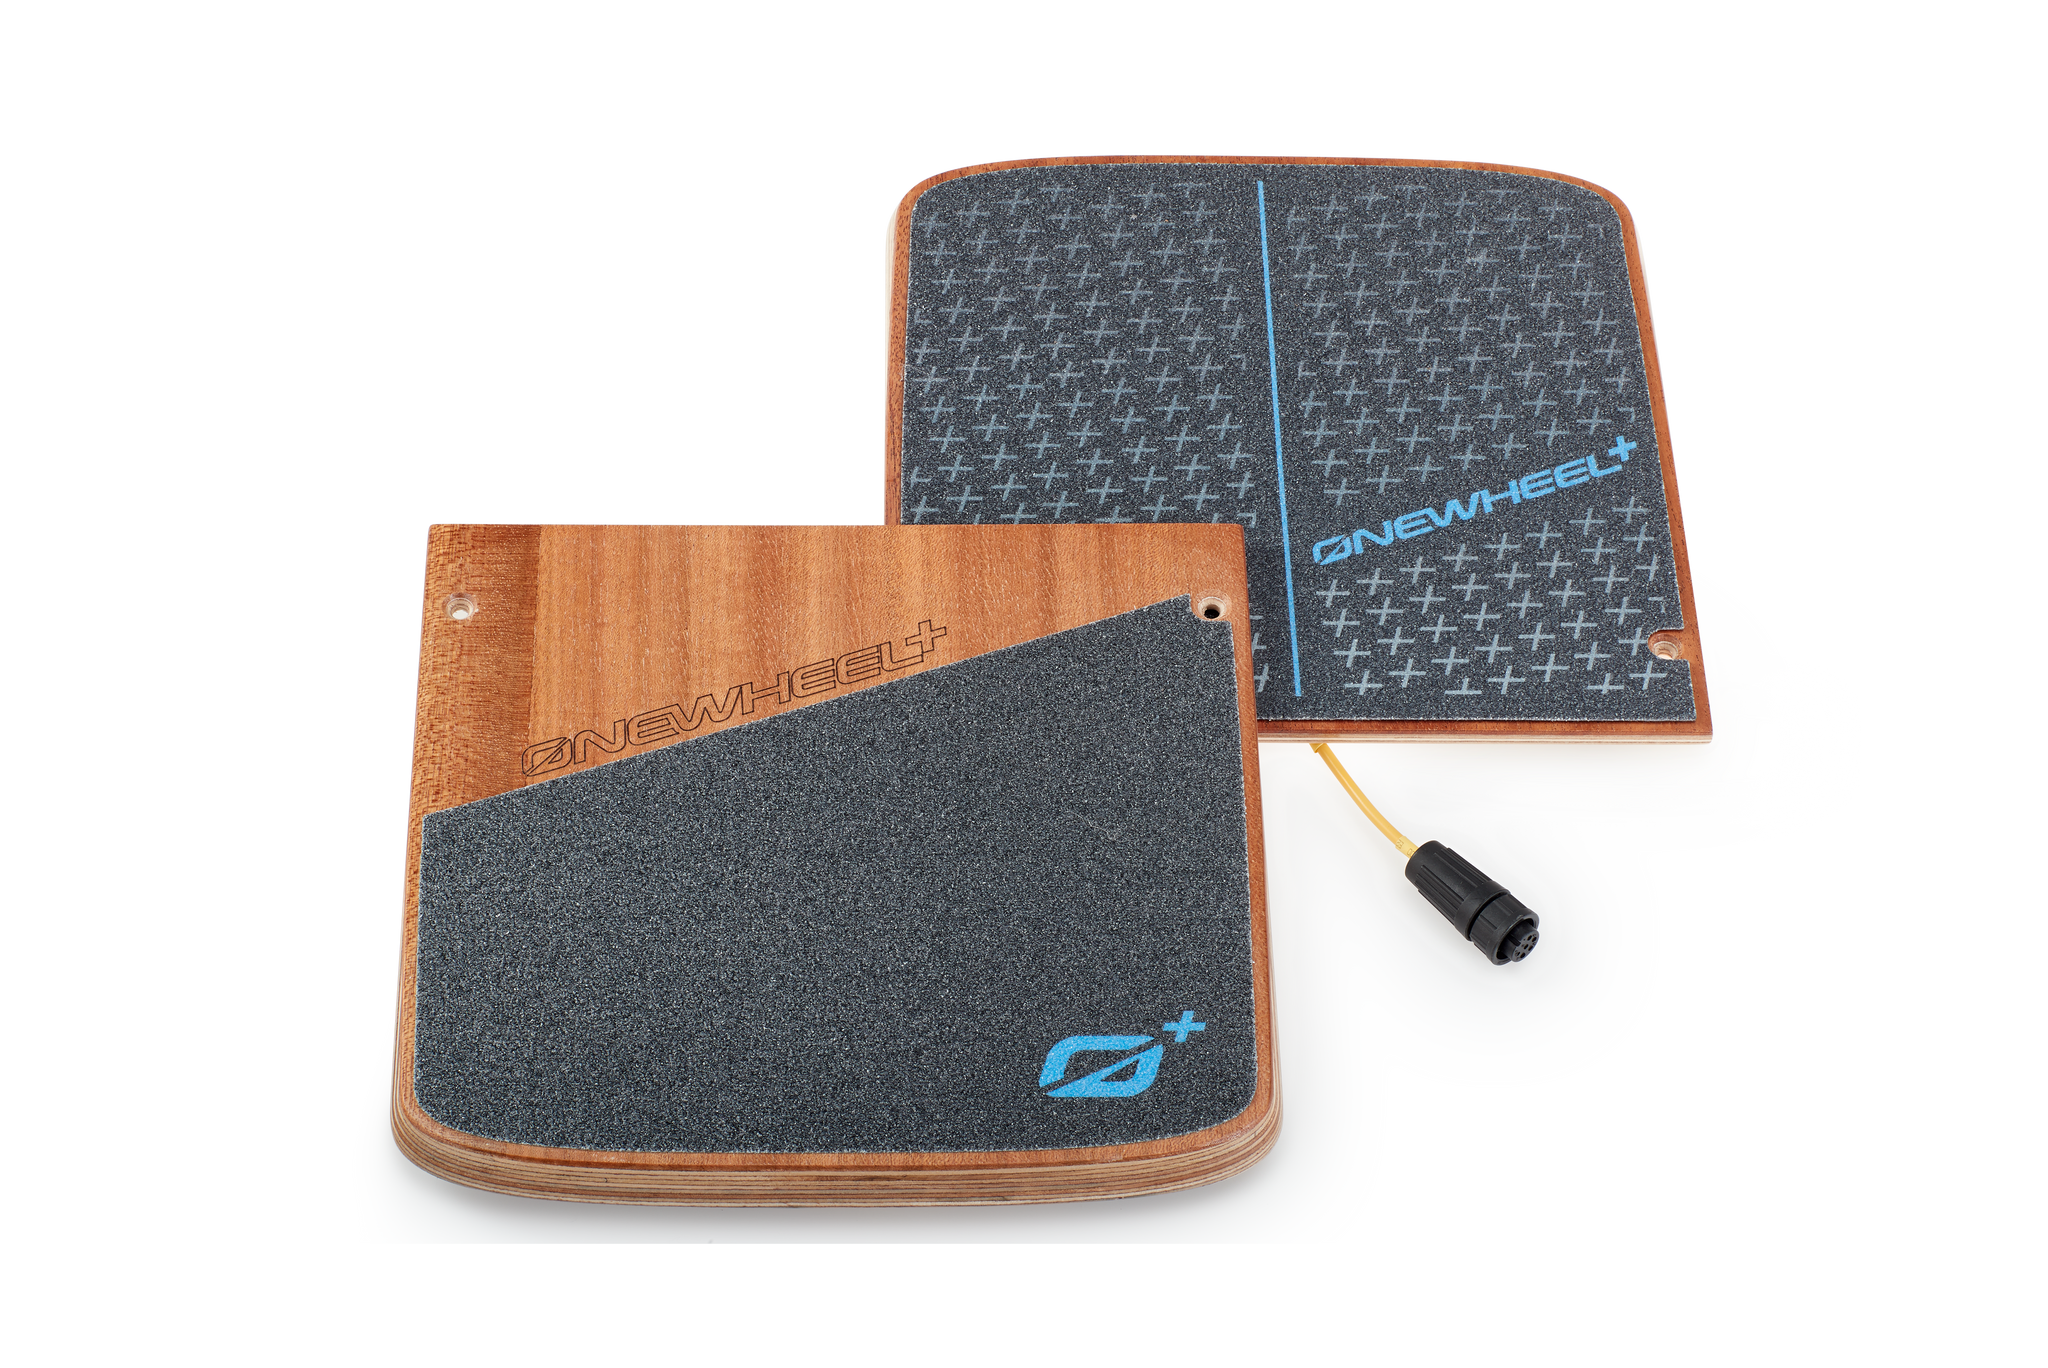 Surestance Footpad